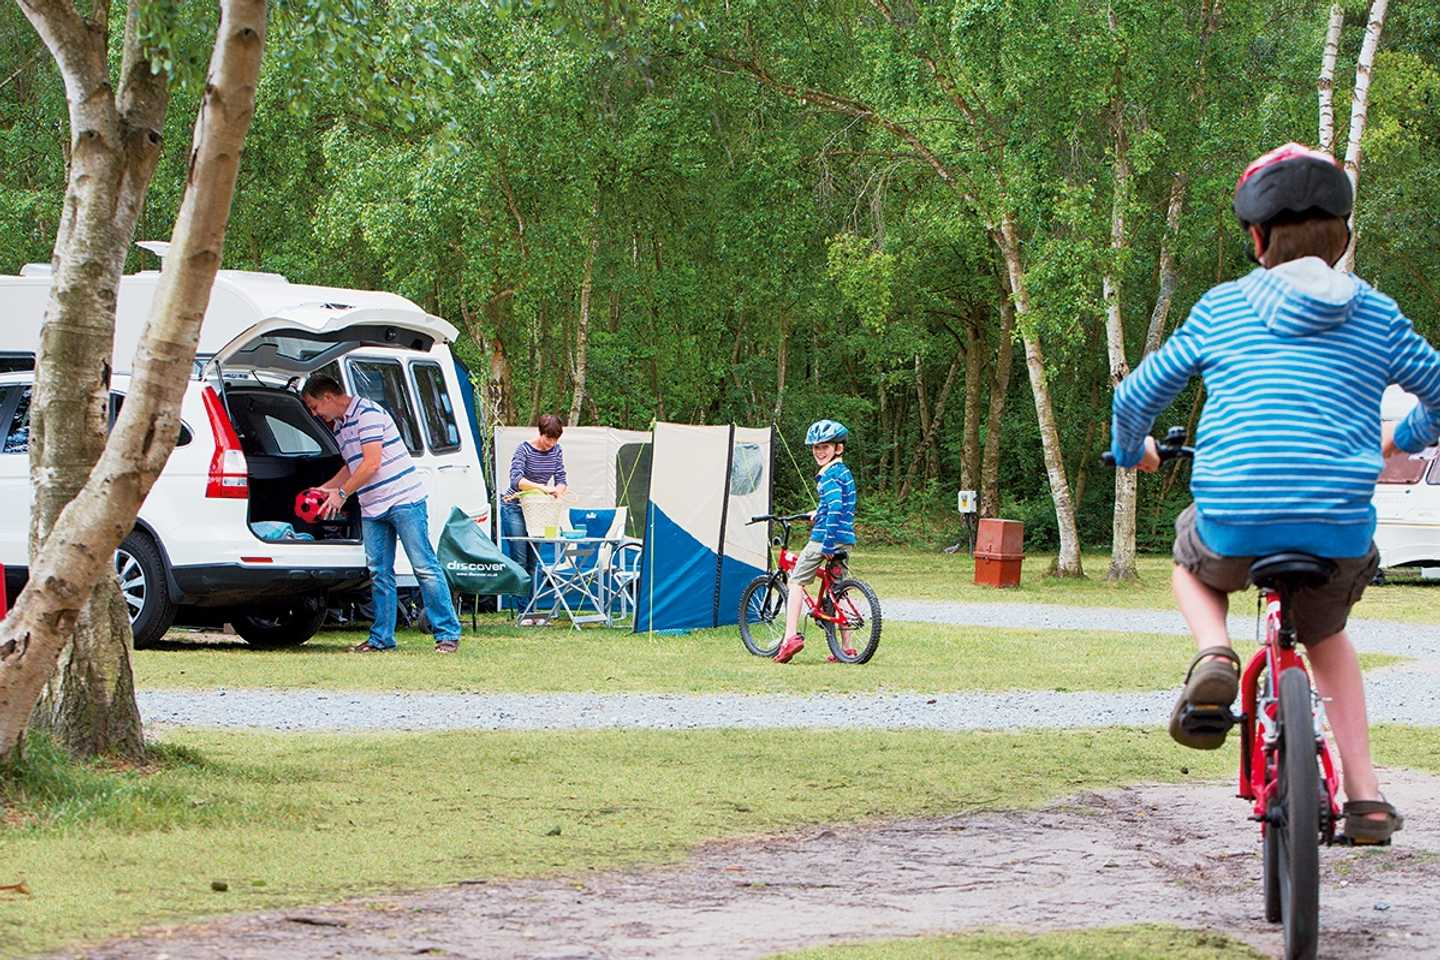 A boy riding a bike through the touring and camping area at Wild Duck